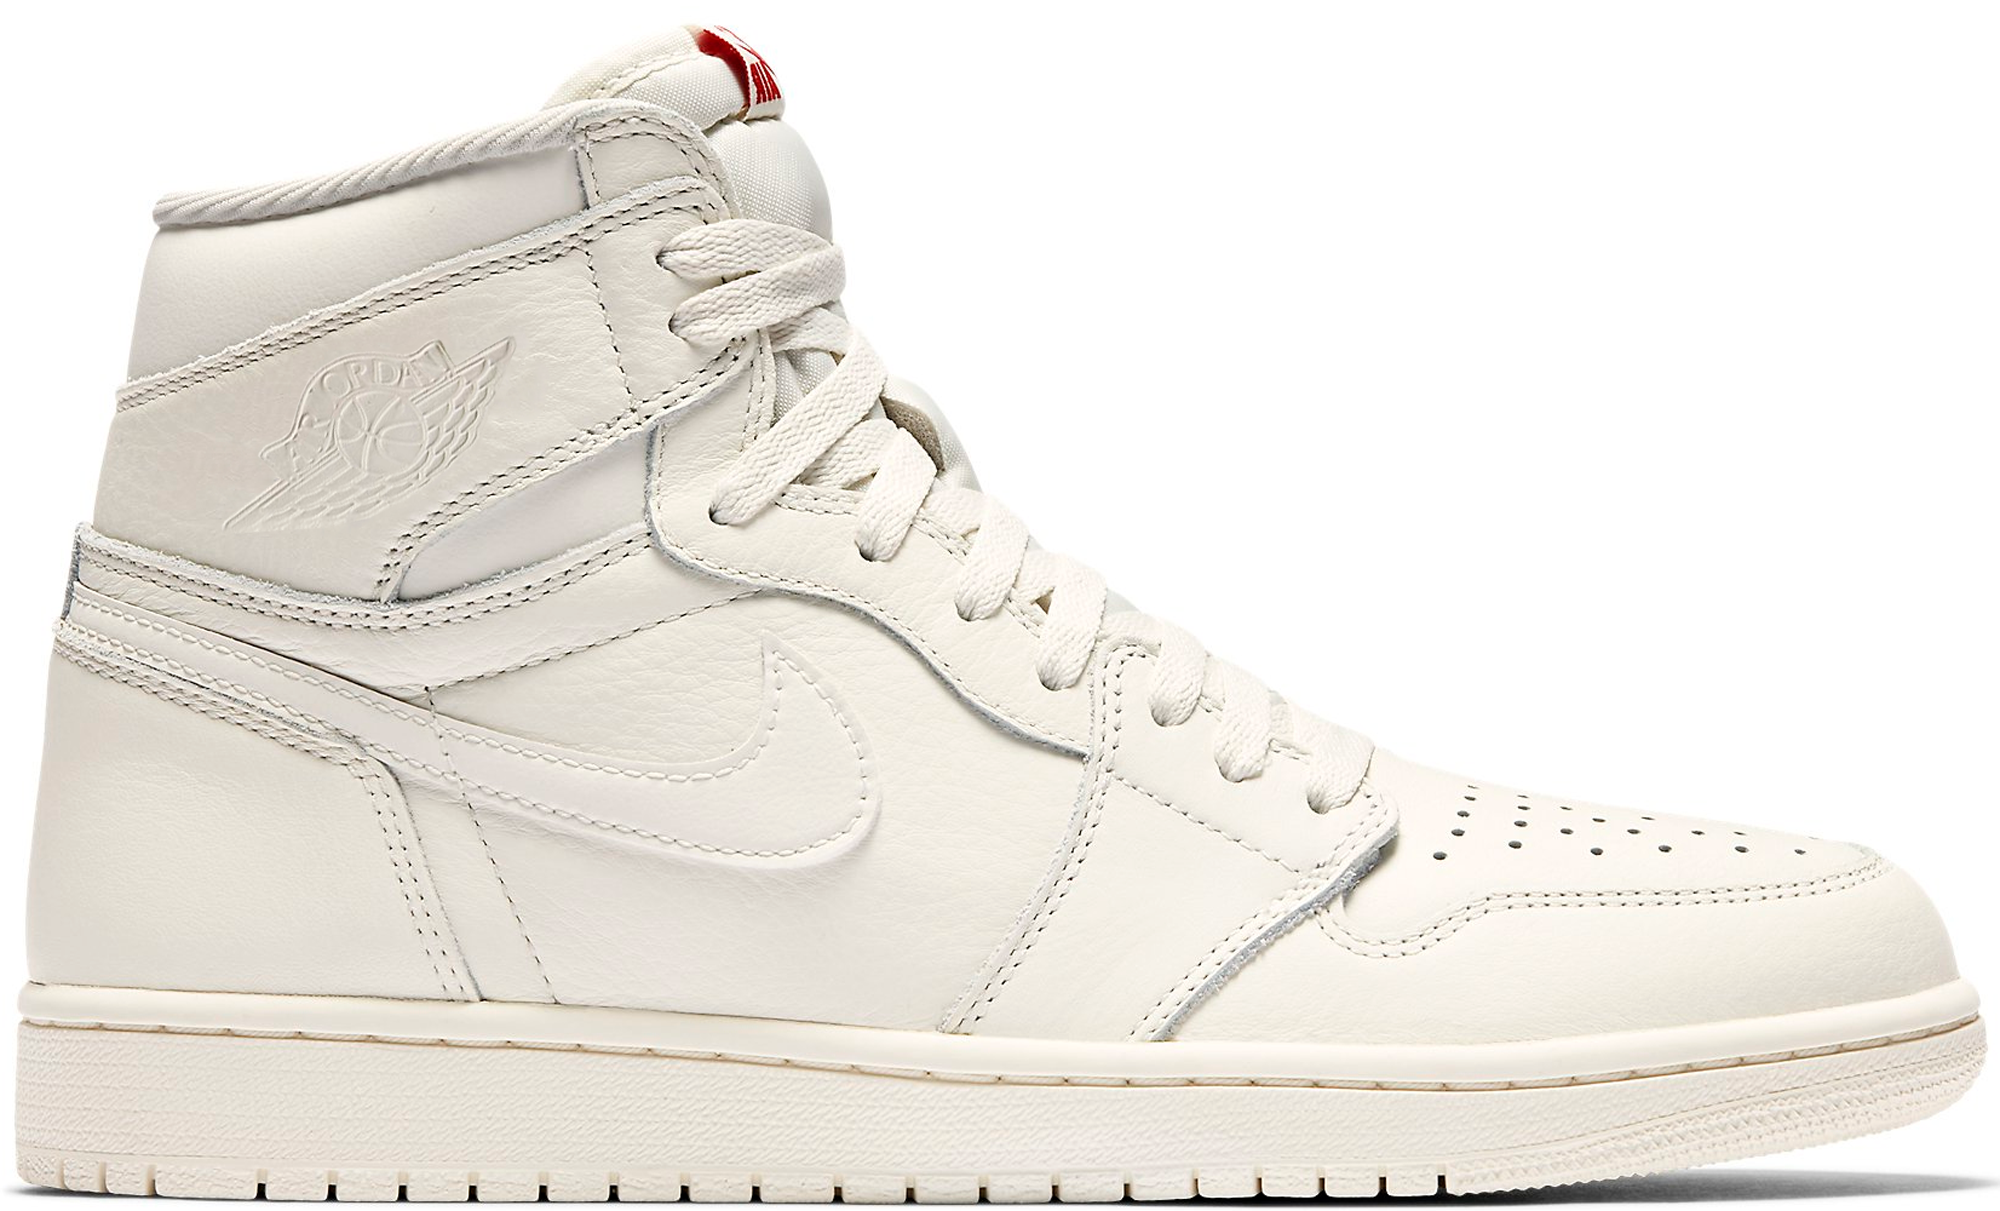 9d97531aba8d Air Jordan 1 Retro High OG Essentials Sail - StockX News